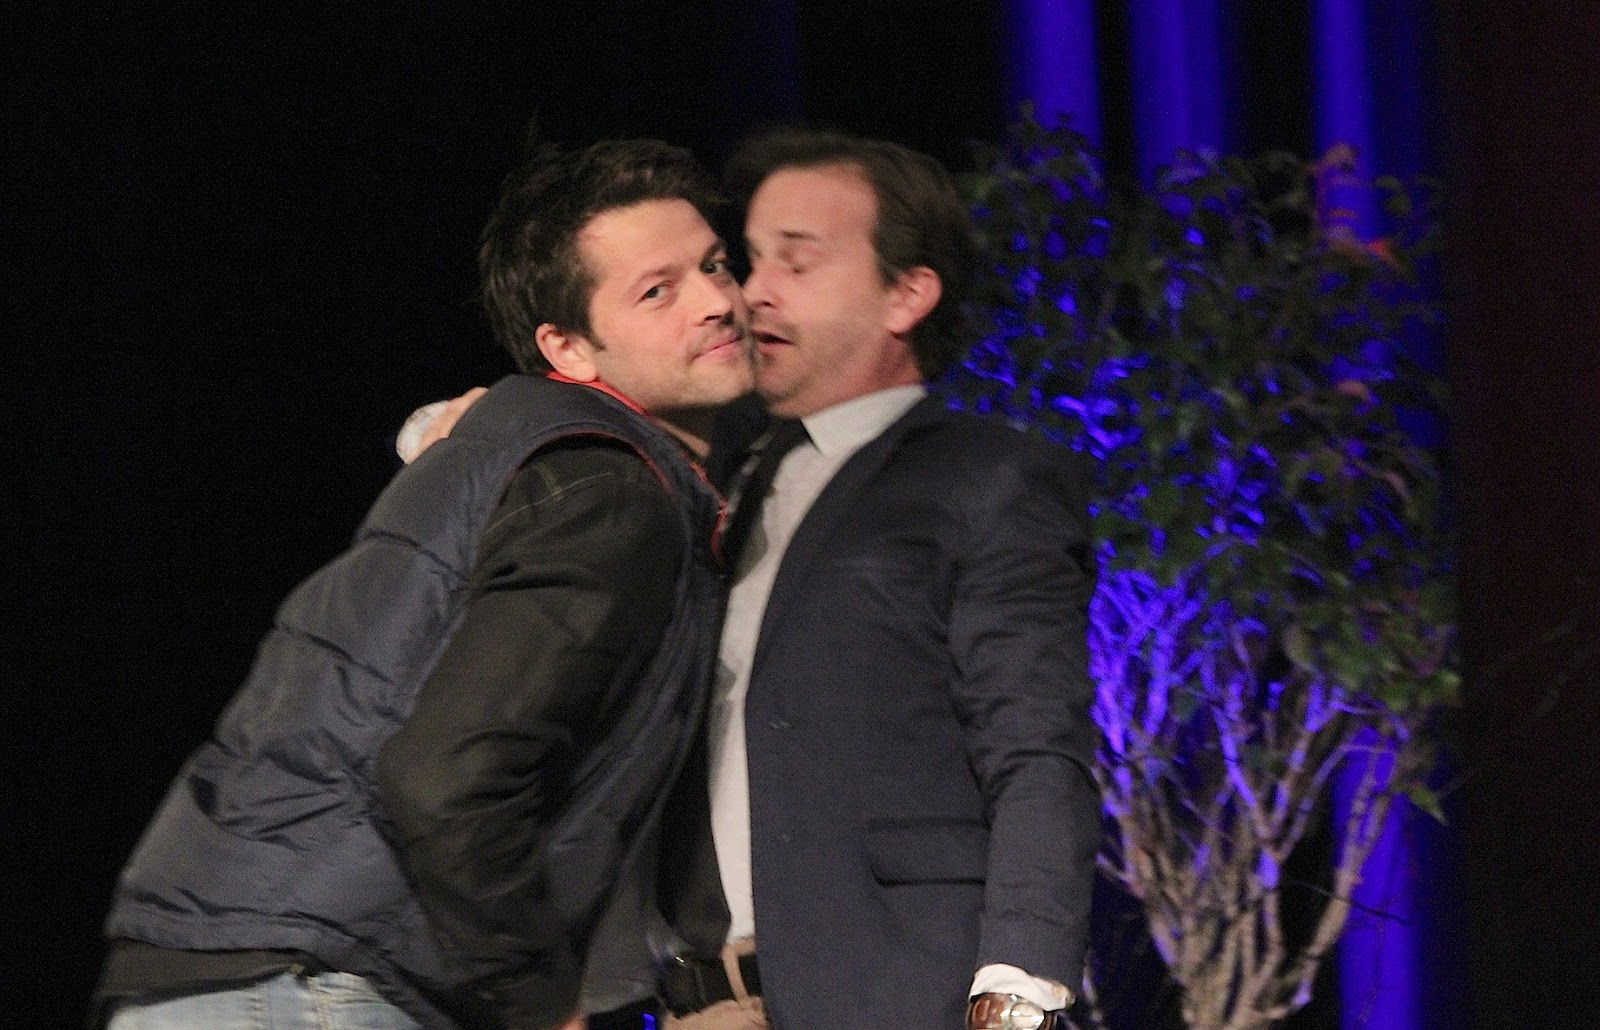 Sweetondean Supernatural Convention Report Viva Las Vegascon Part